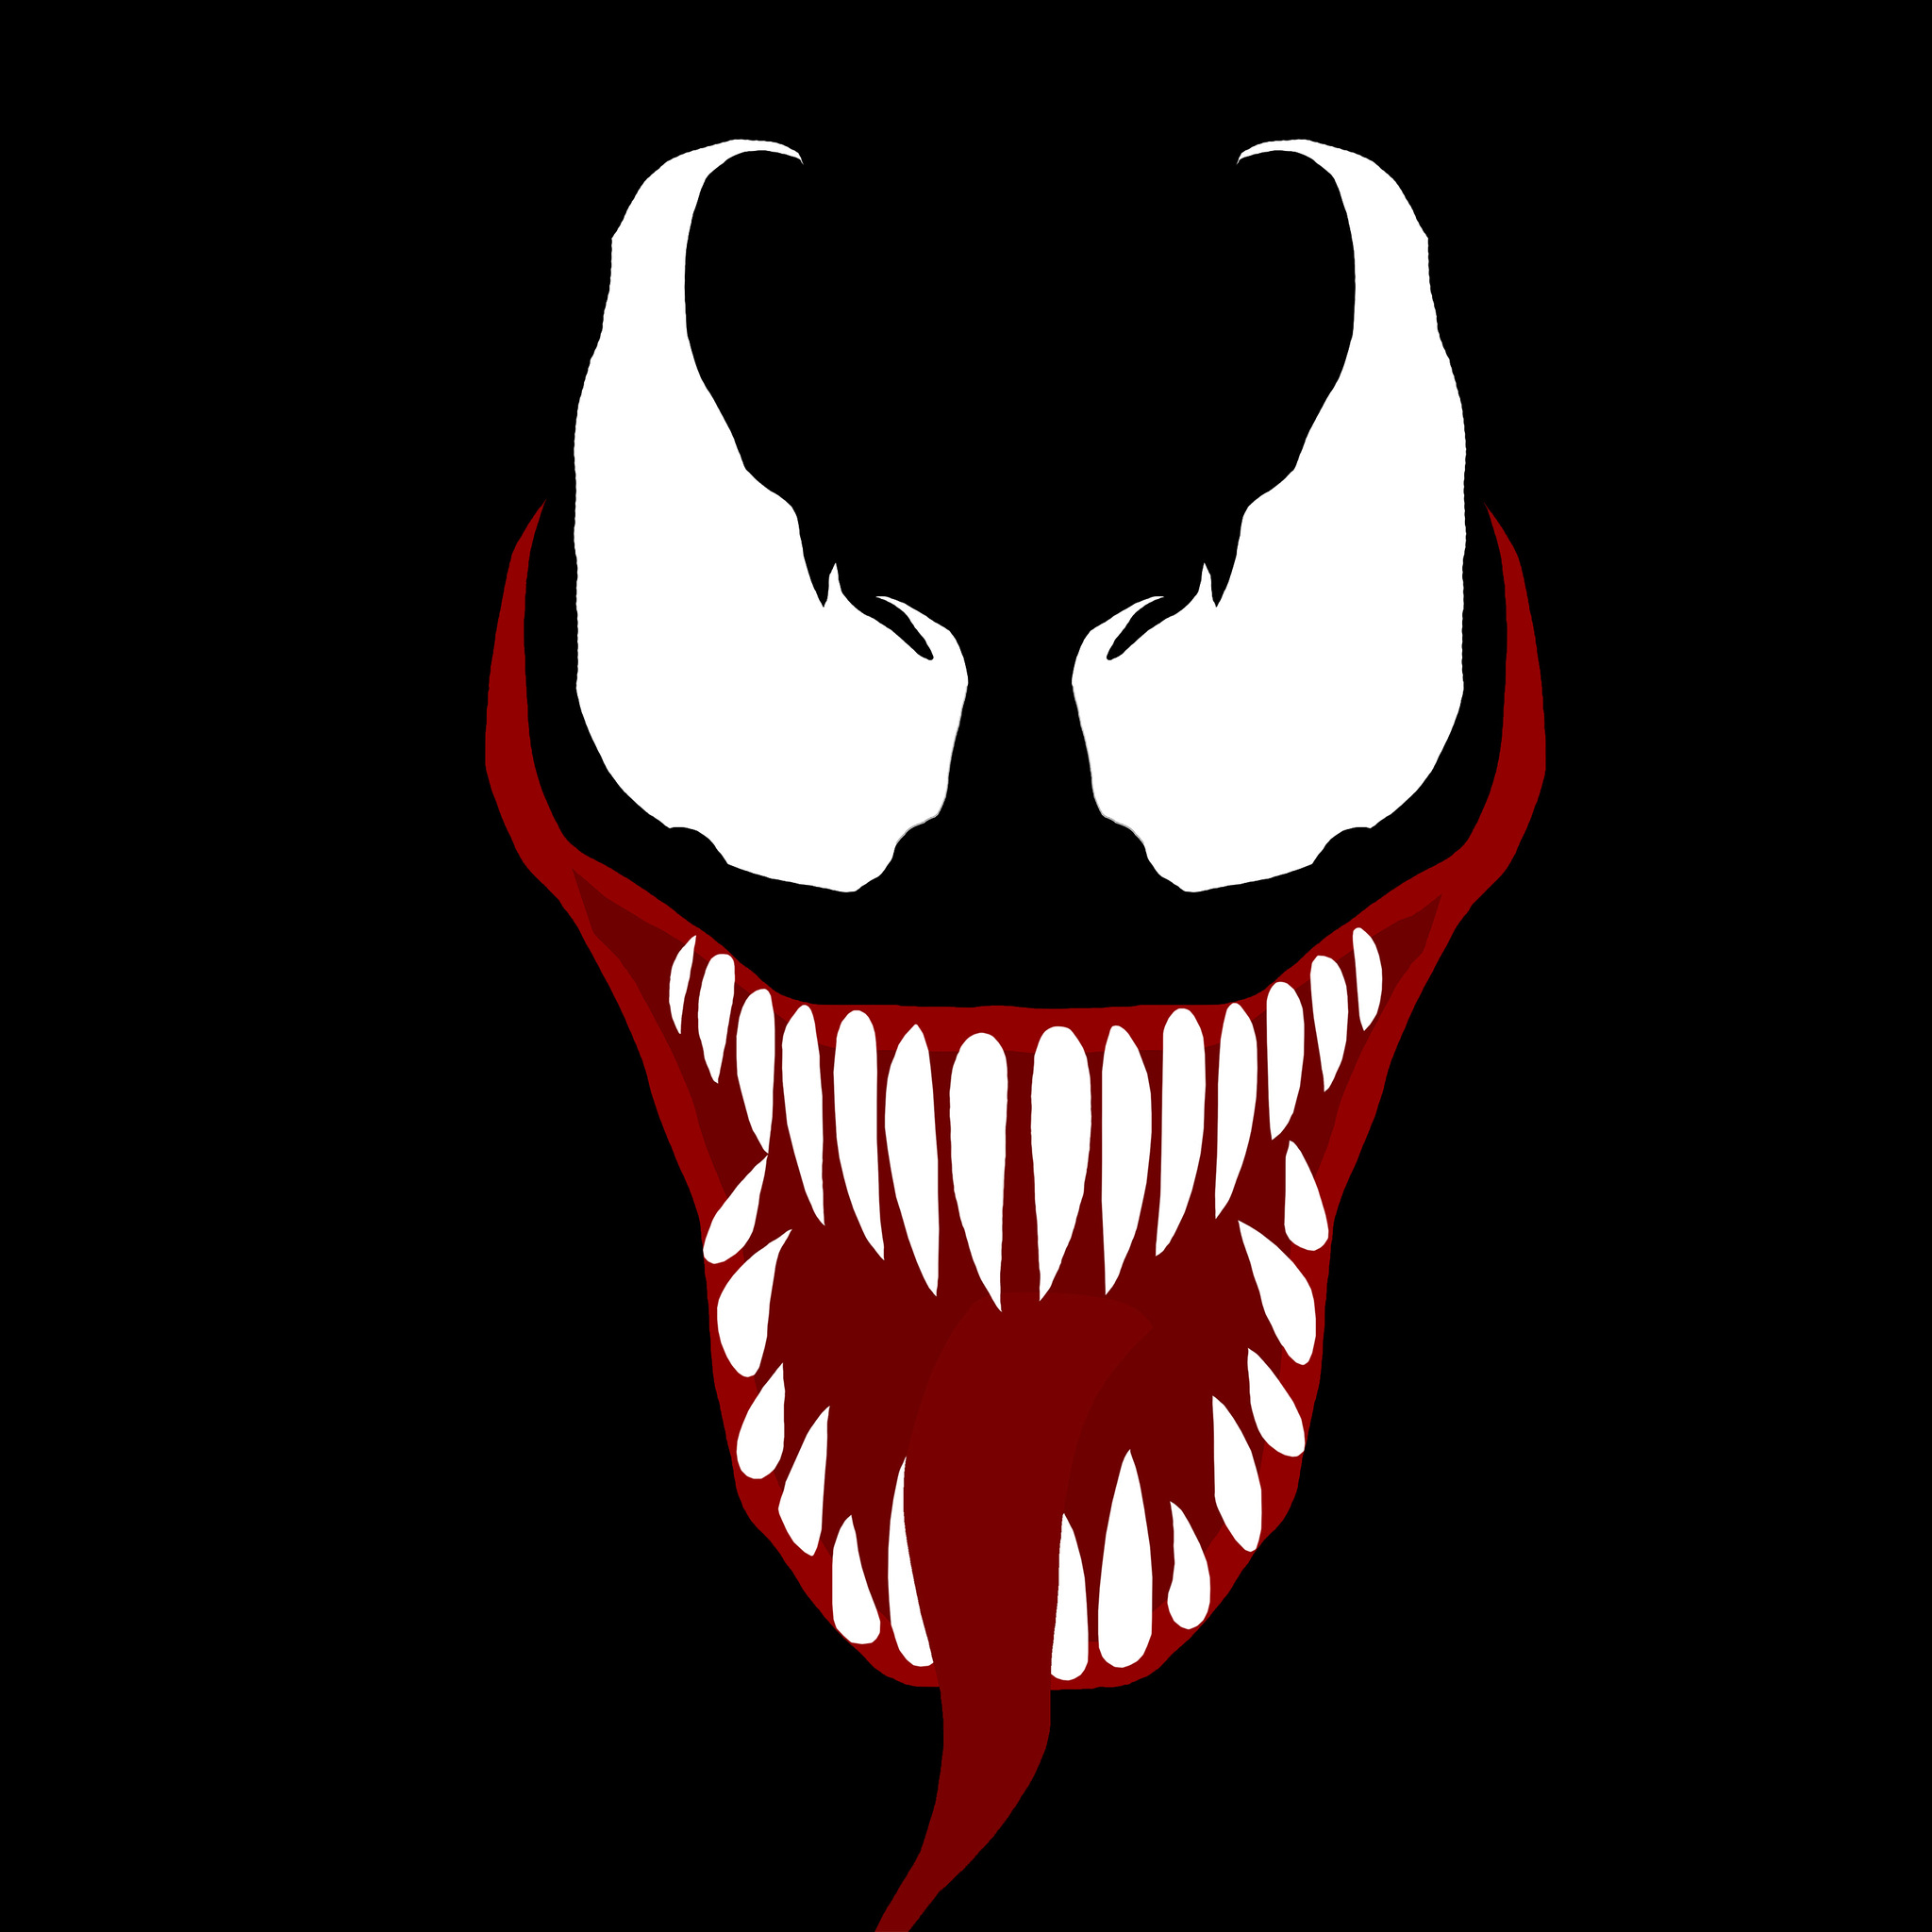 2048x2048 2048x2048 Venom Movie Face Ipad Air HD 4k Wallpapers, Images ...